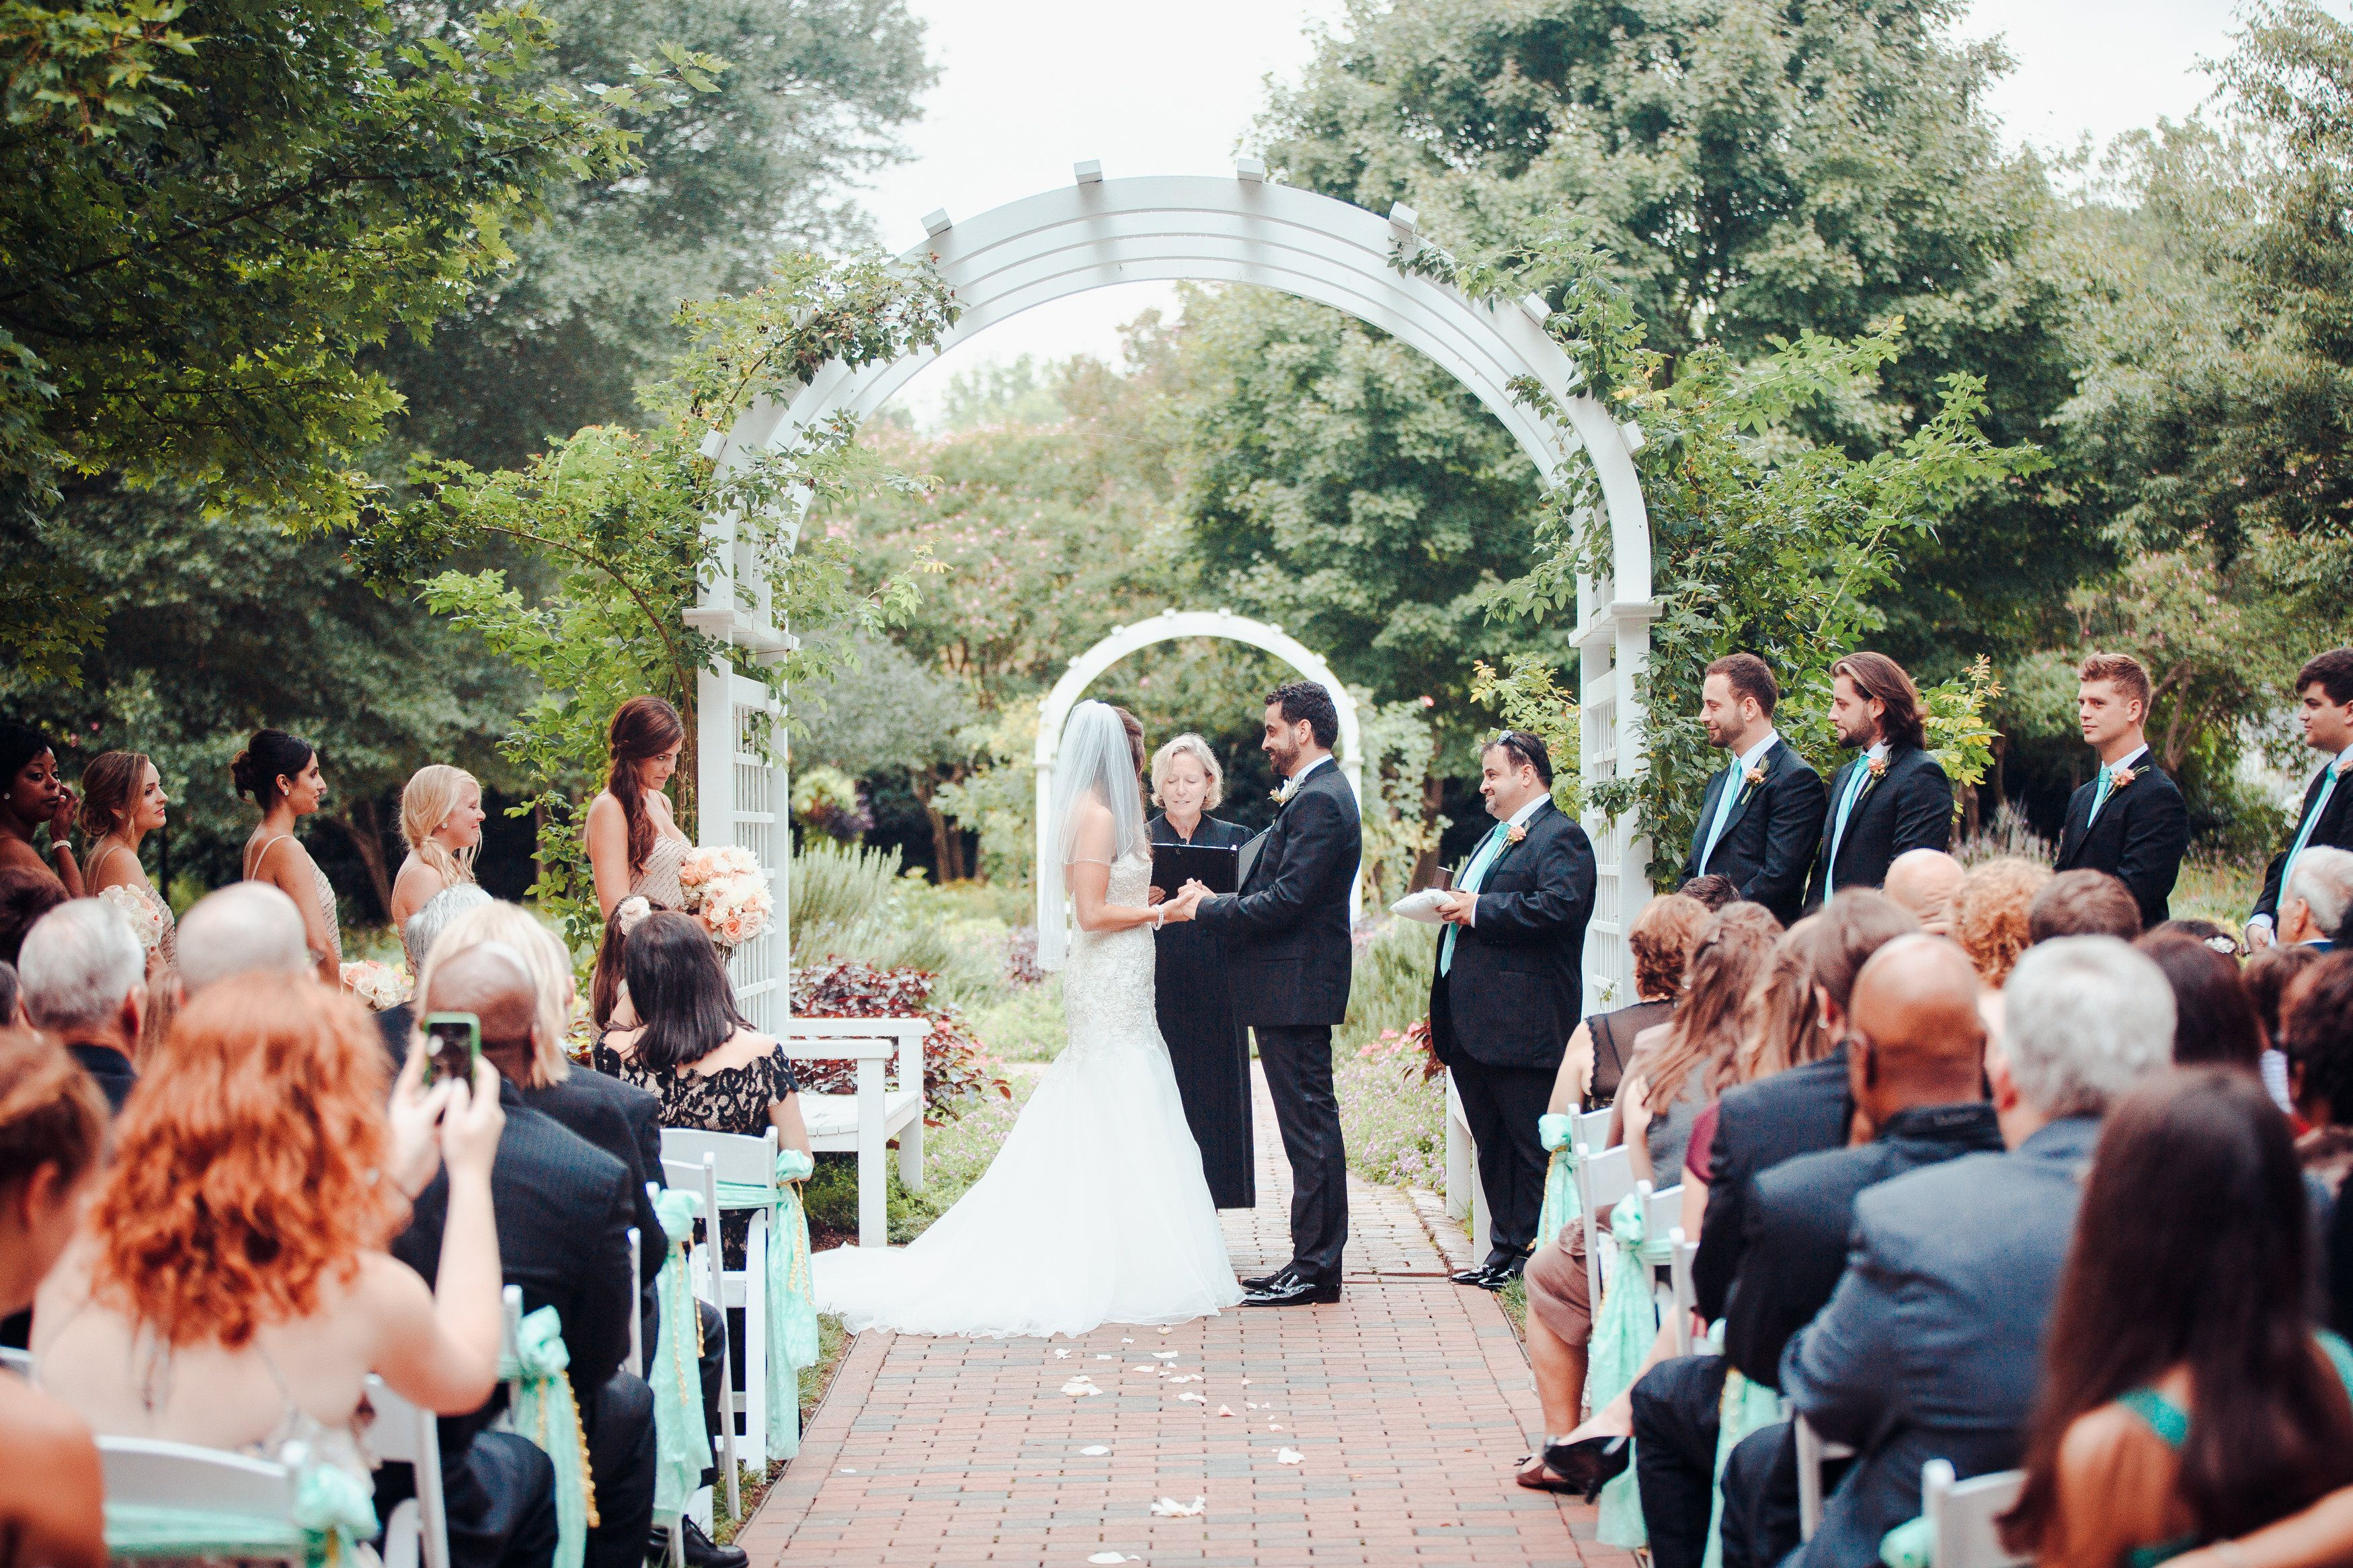 A Wedding Ceremony In Grace As Garden At Bloemendaal House